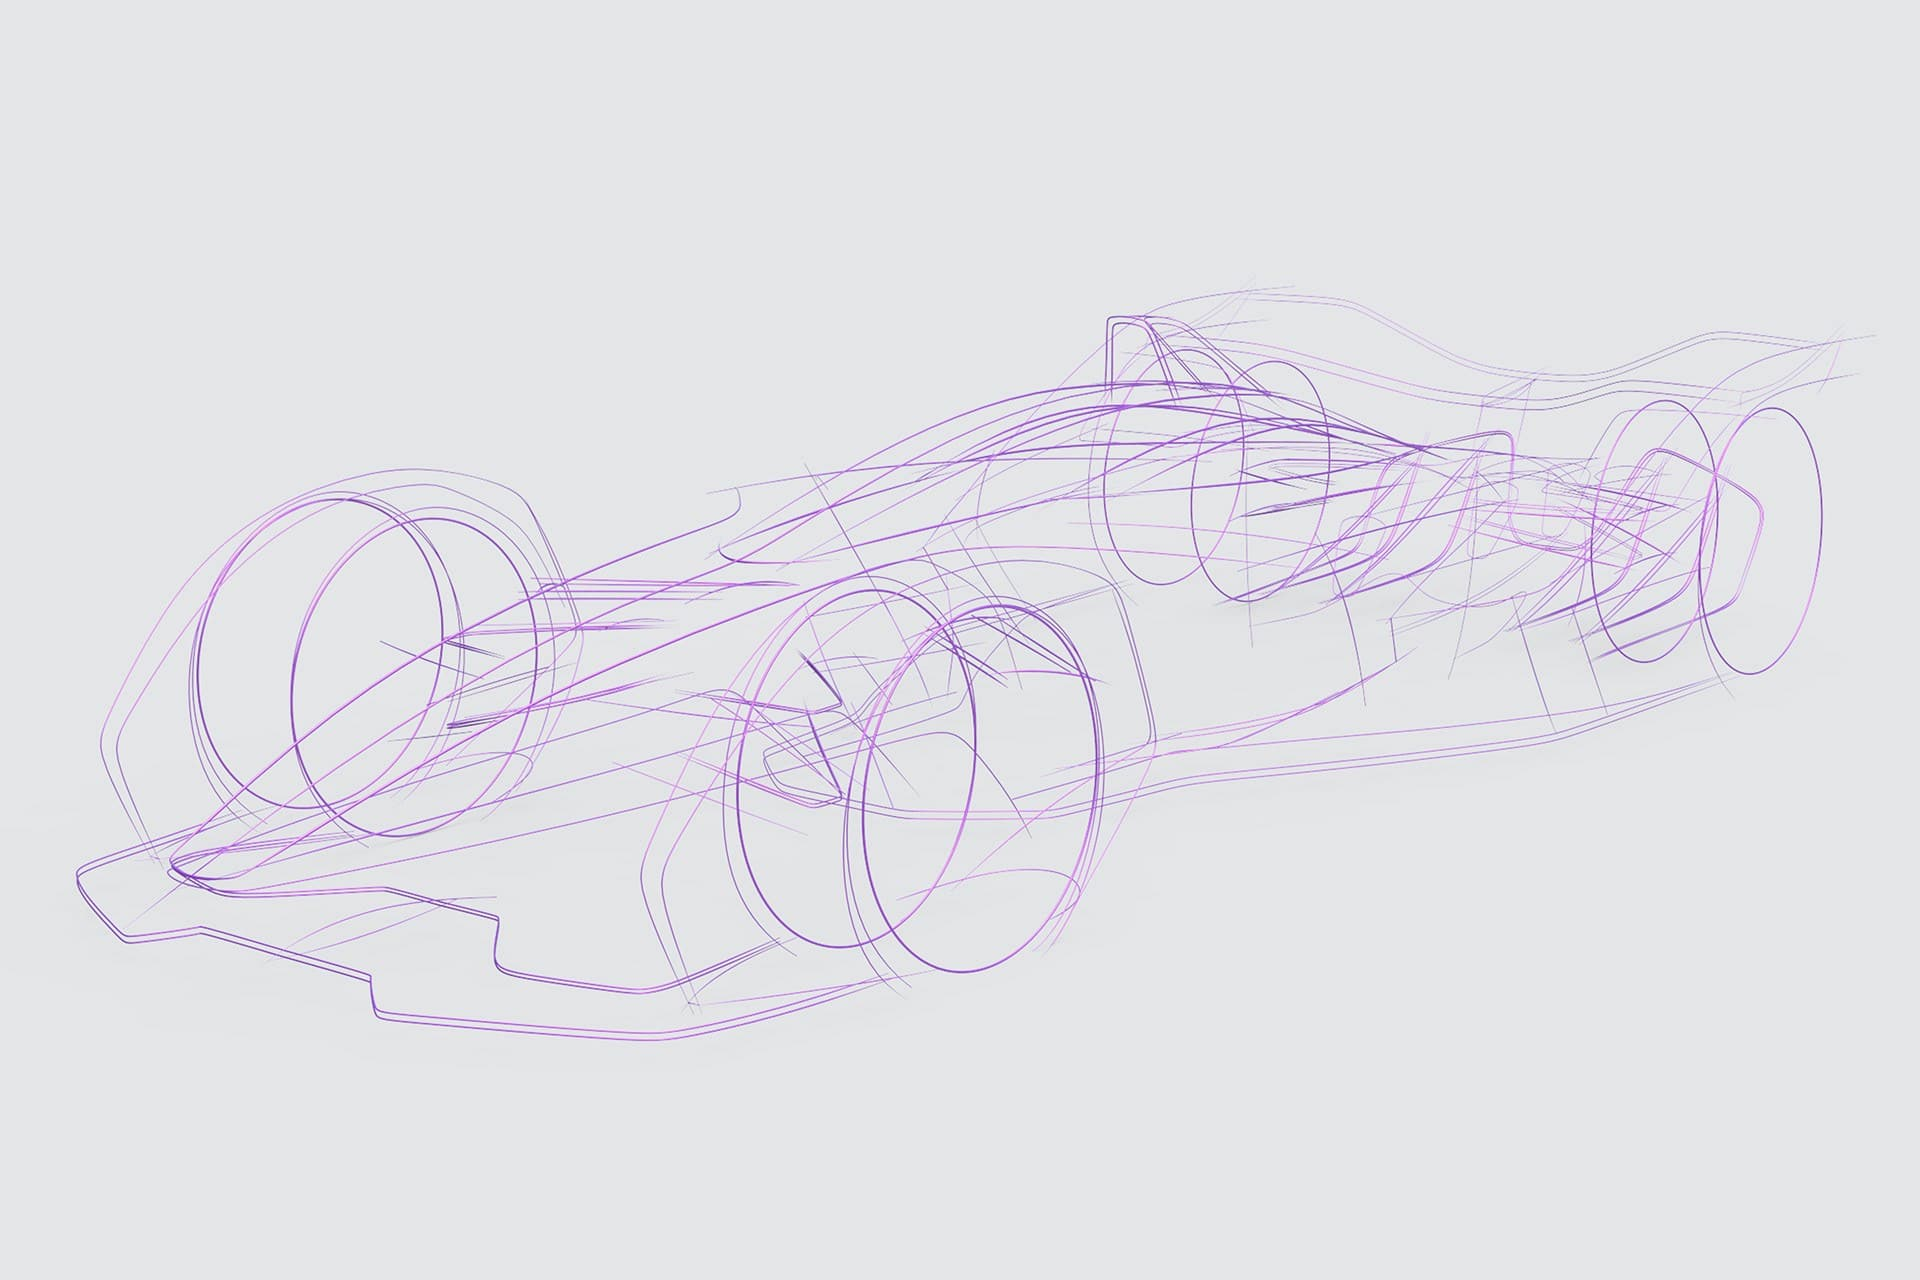 Wireframe of car sketched in Gravity Sketch by Matteo Gentile